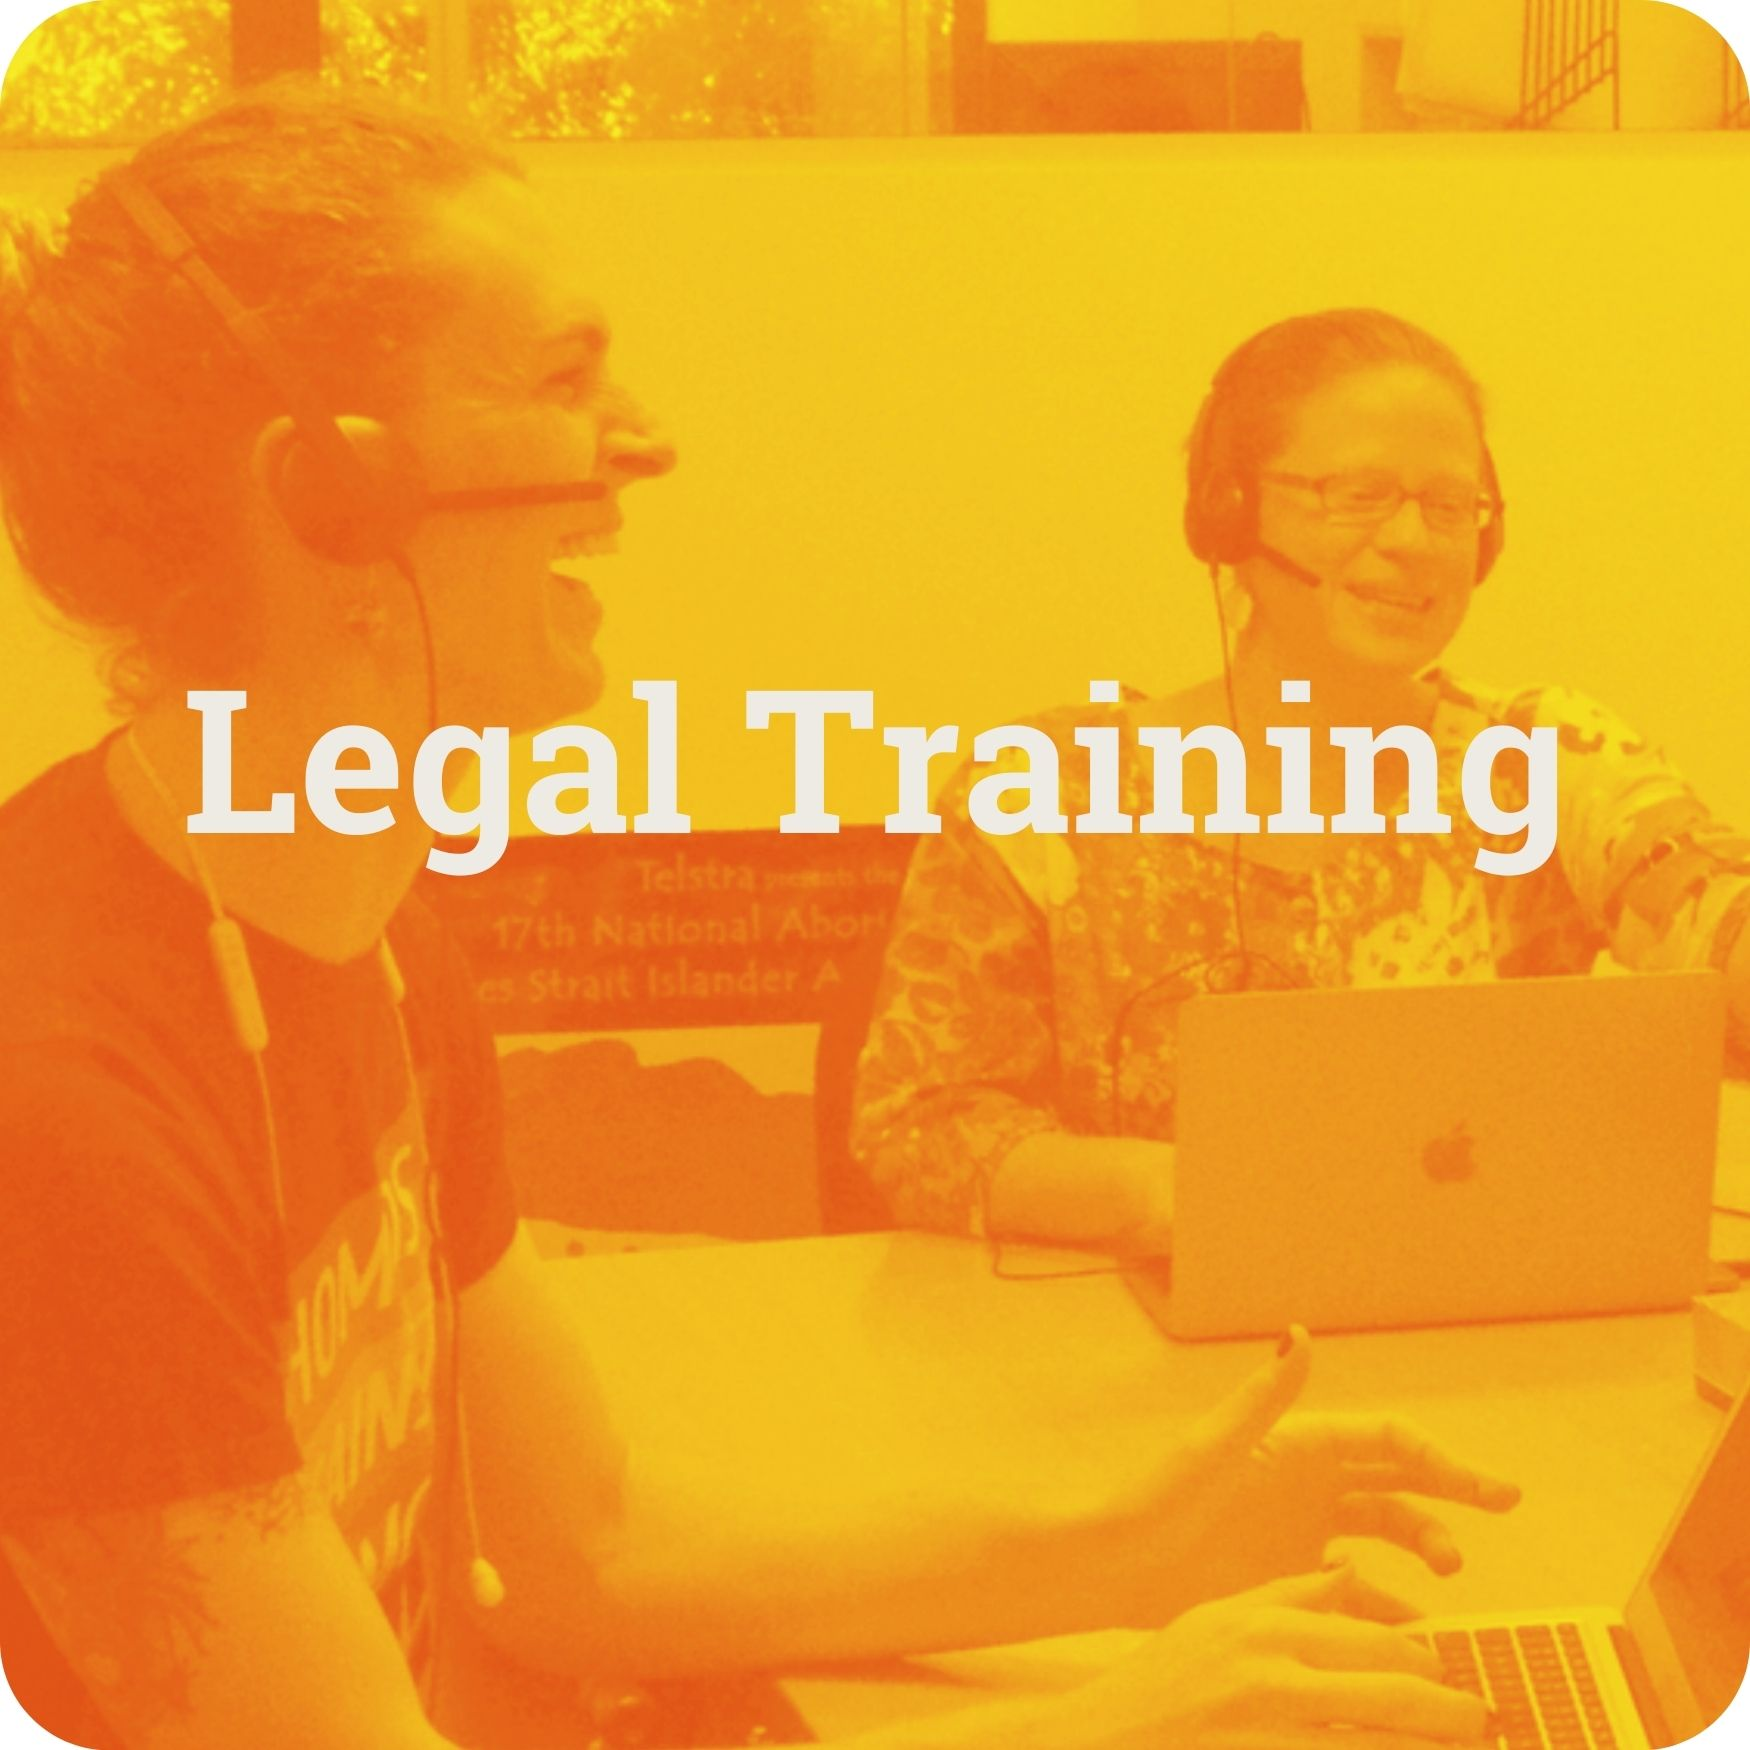 Legal training